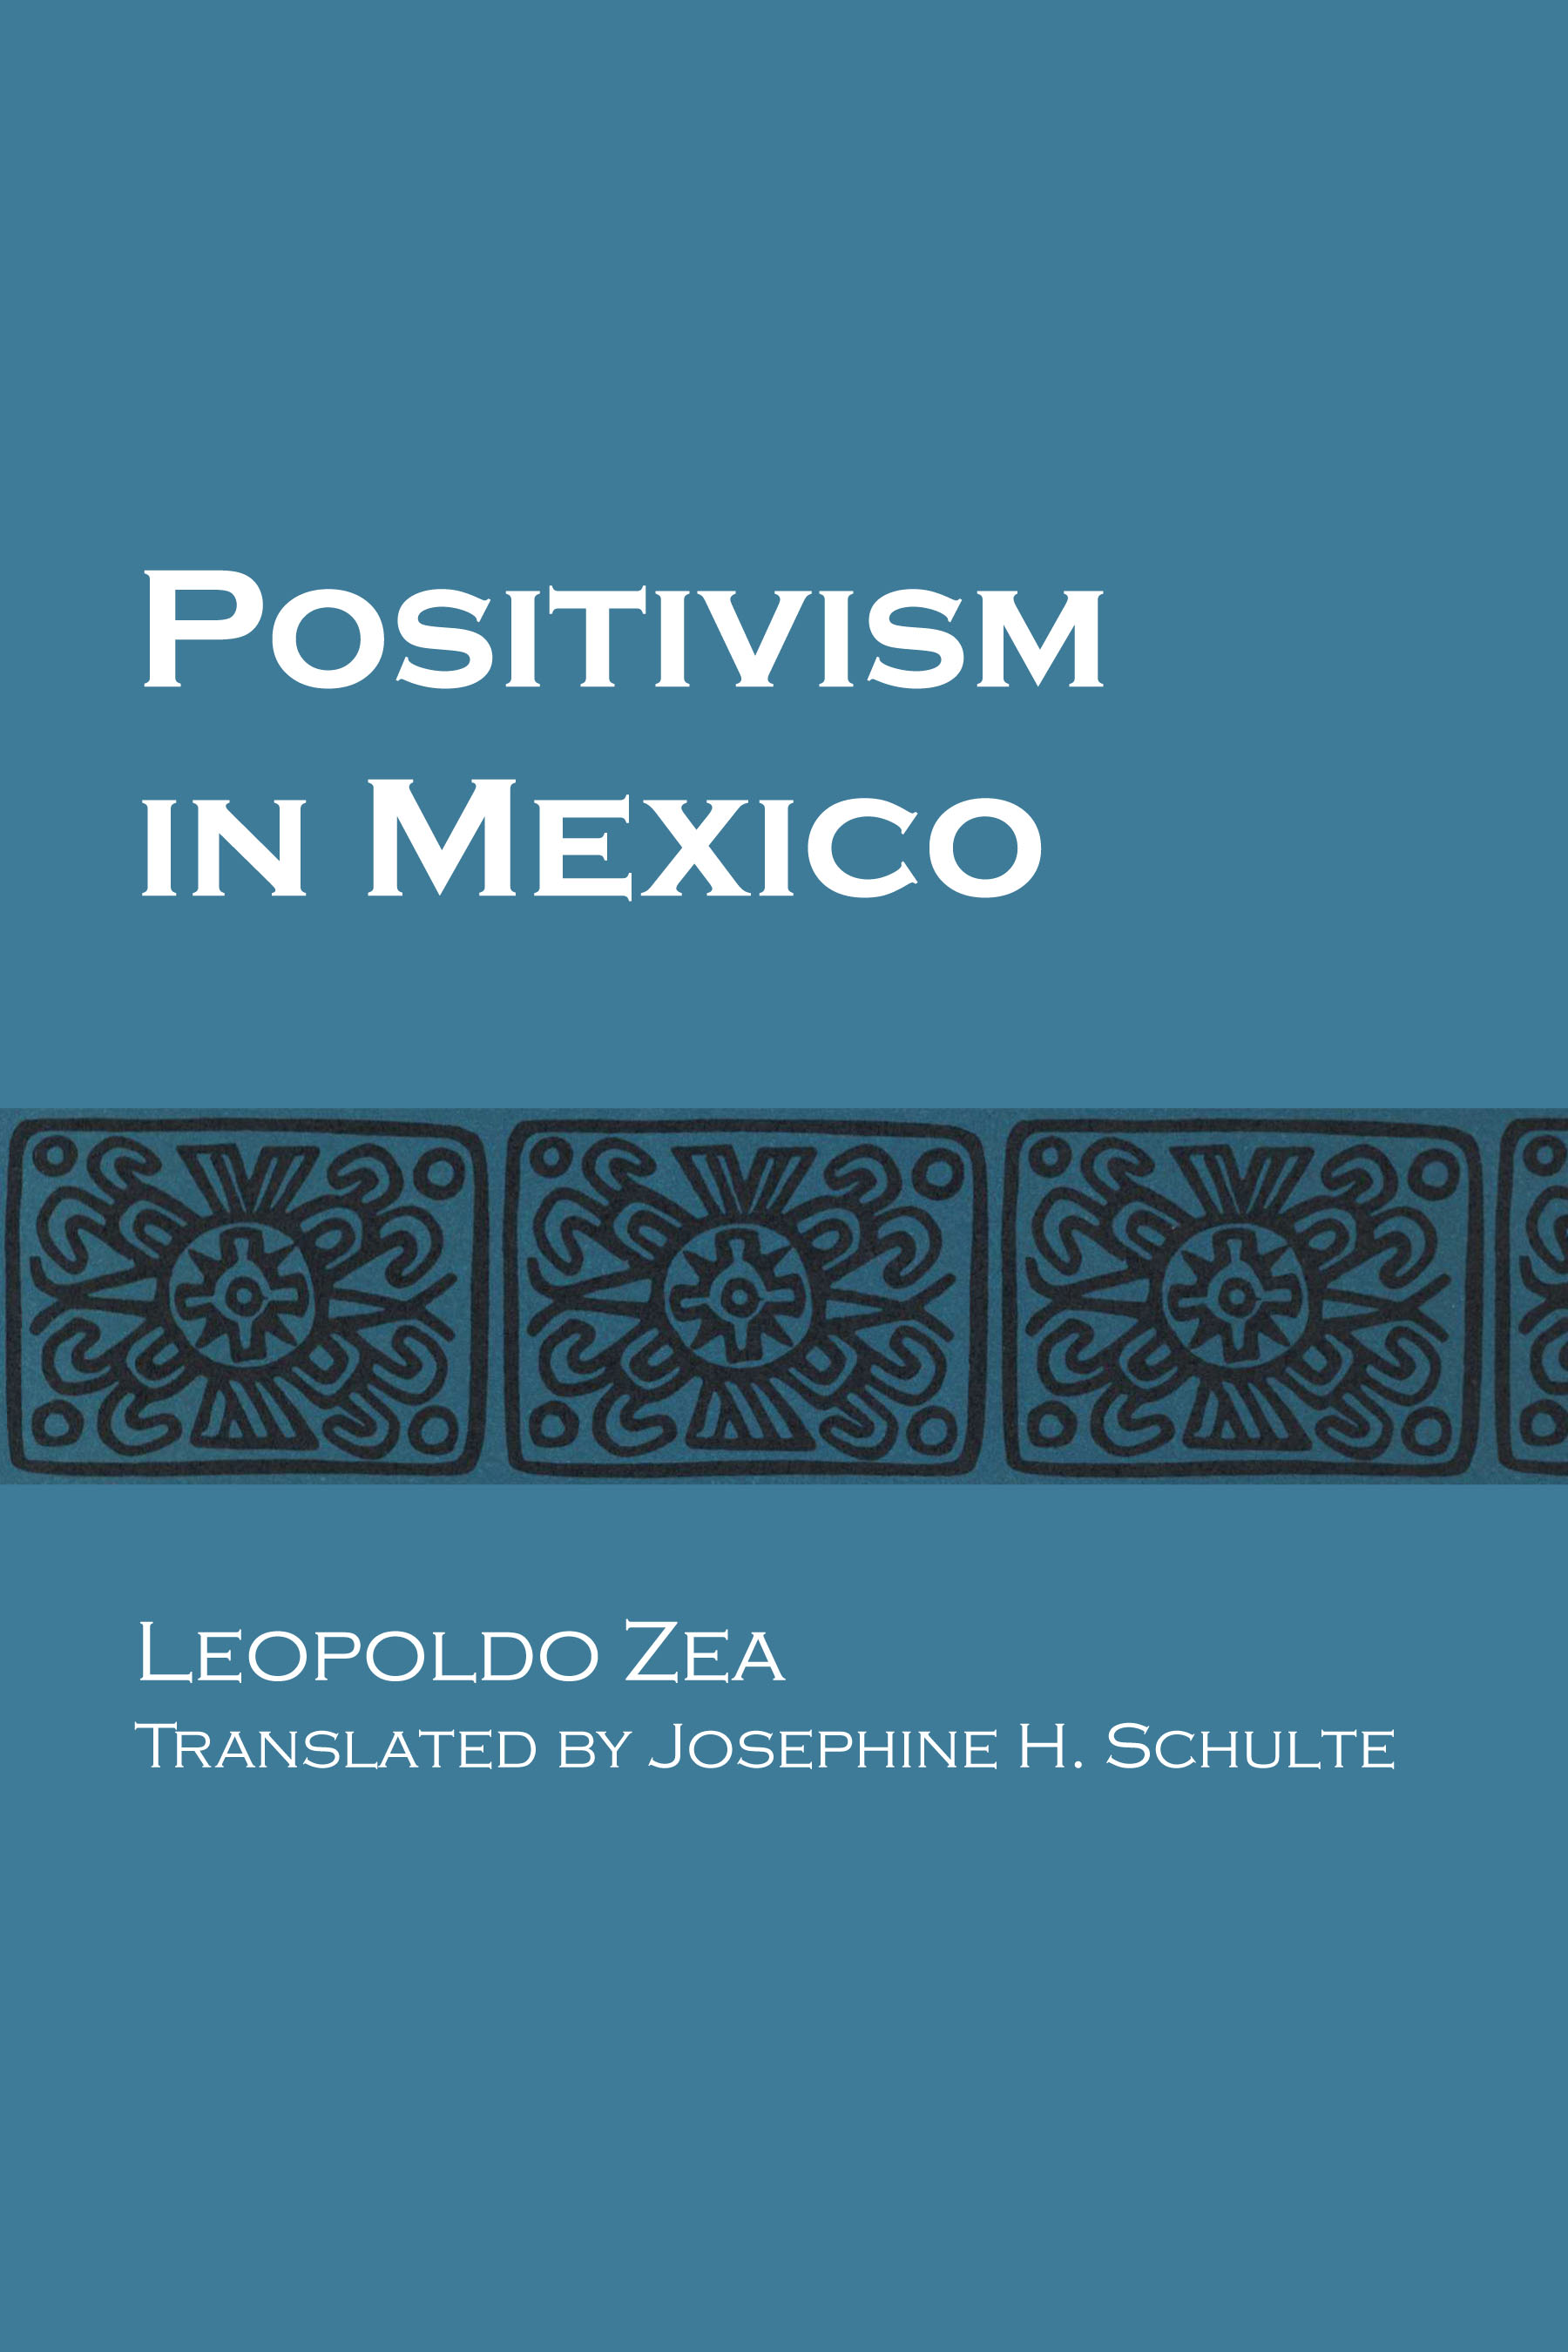 Cover of Positivism in Mexico